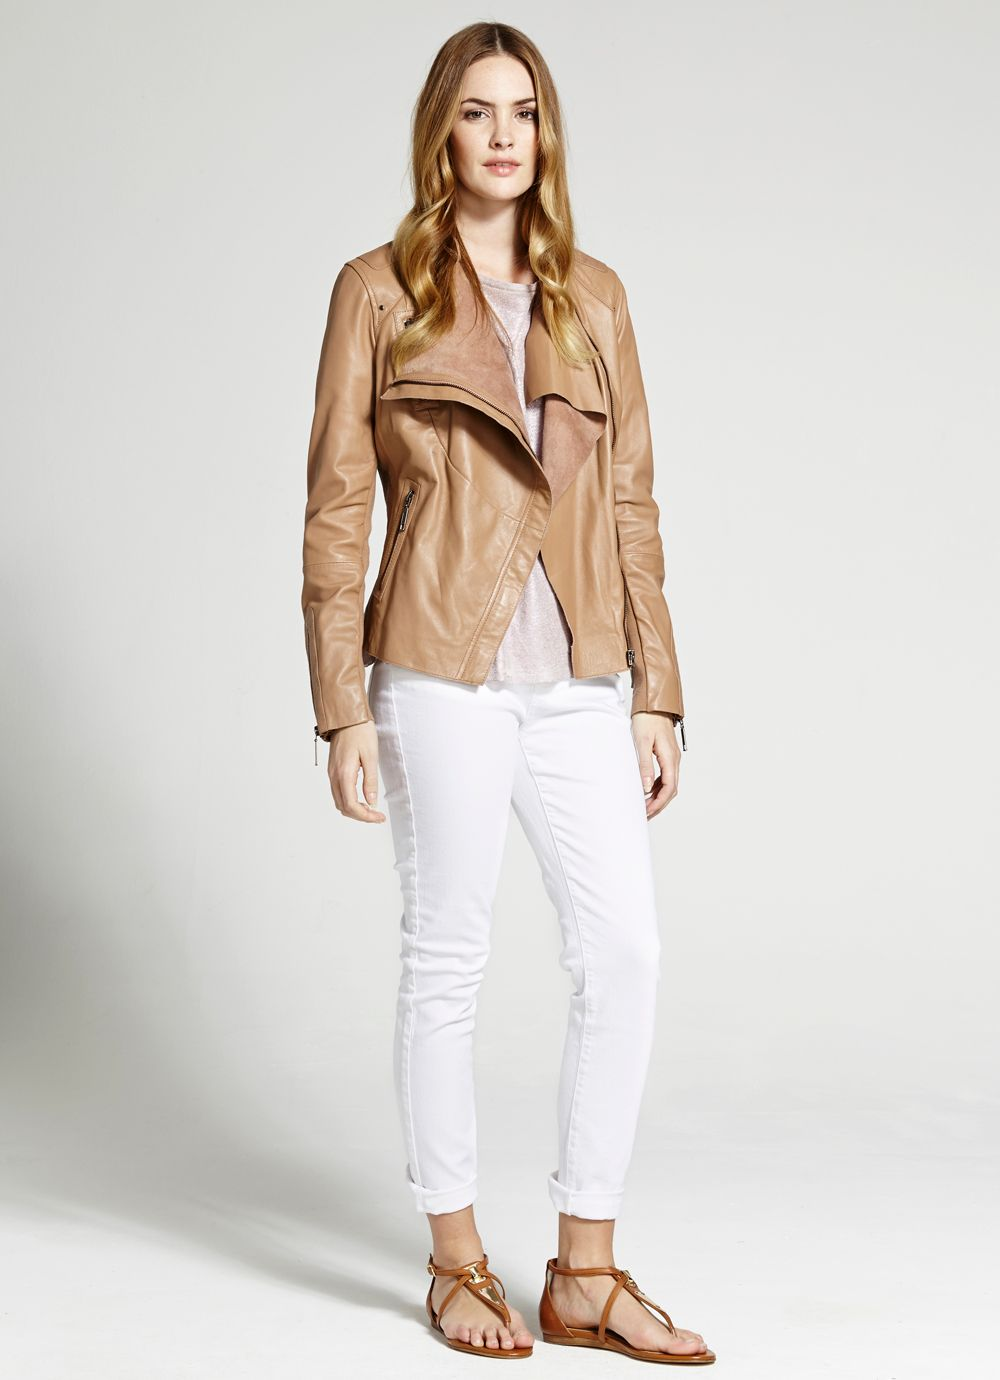 Tan organic front leather jacket